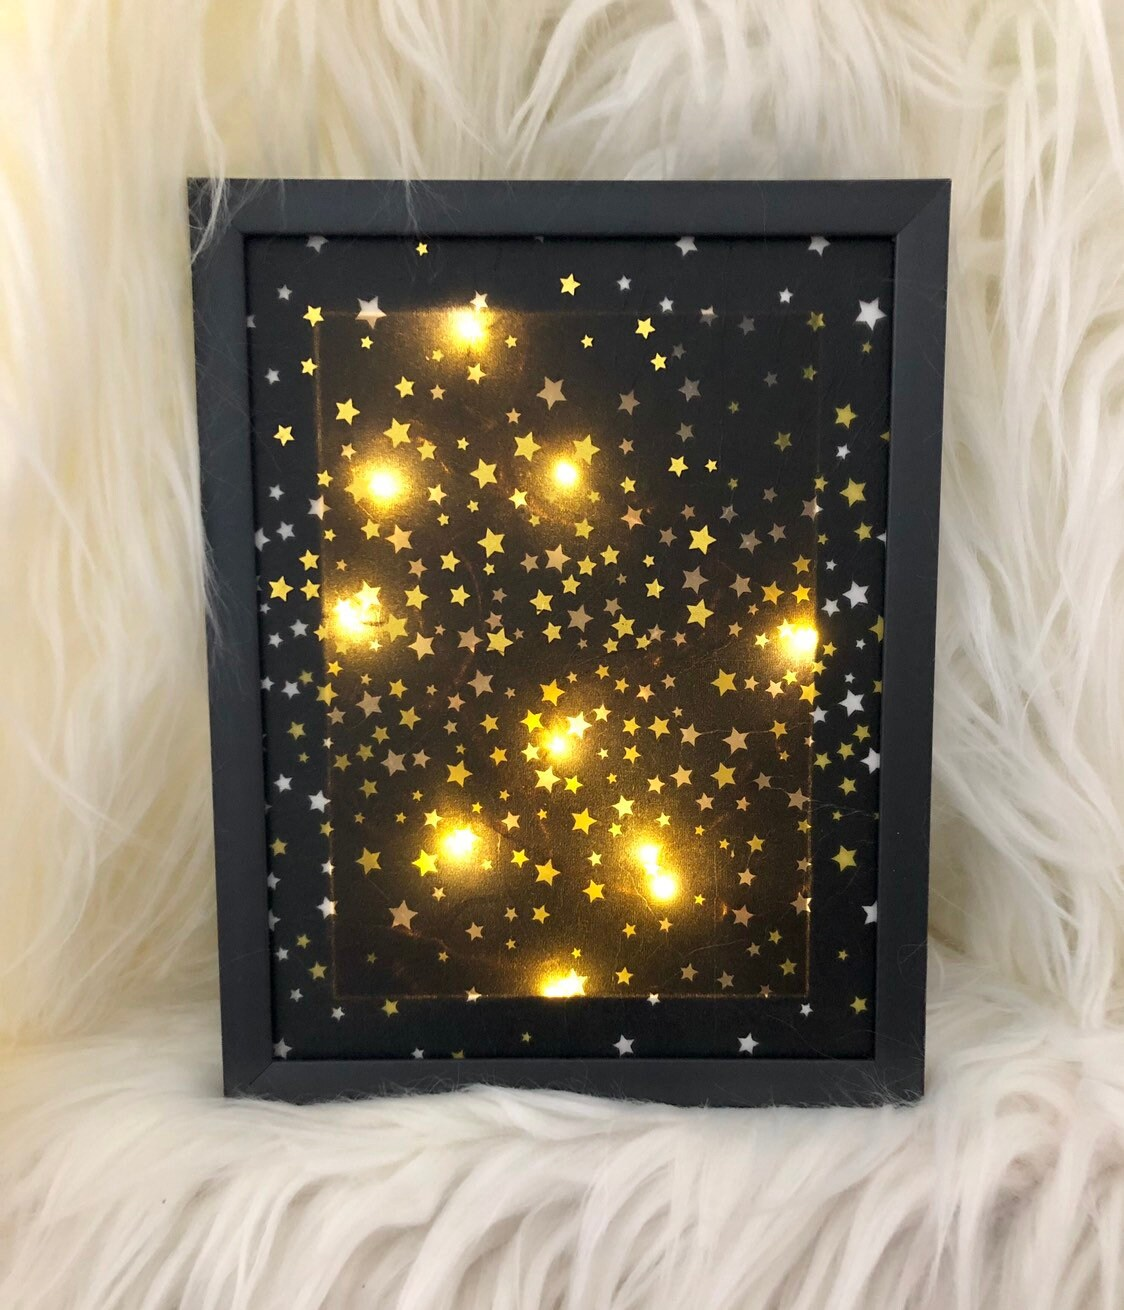 Lighted Picture Frame With Stars Lighted Star Frame Lighted Gifts Lighted Frames Tabletop Decor Wall Decor